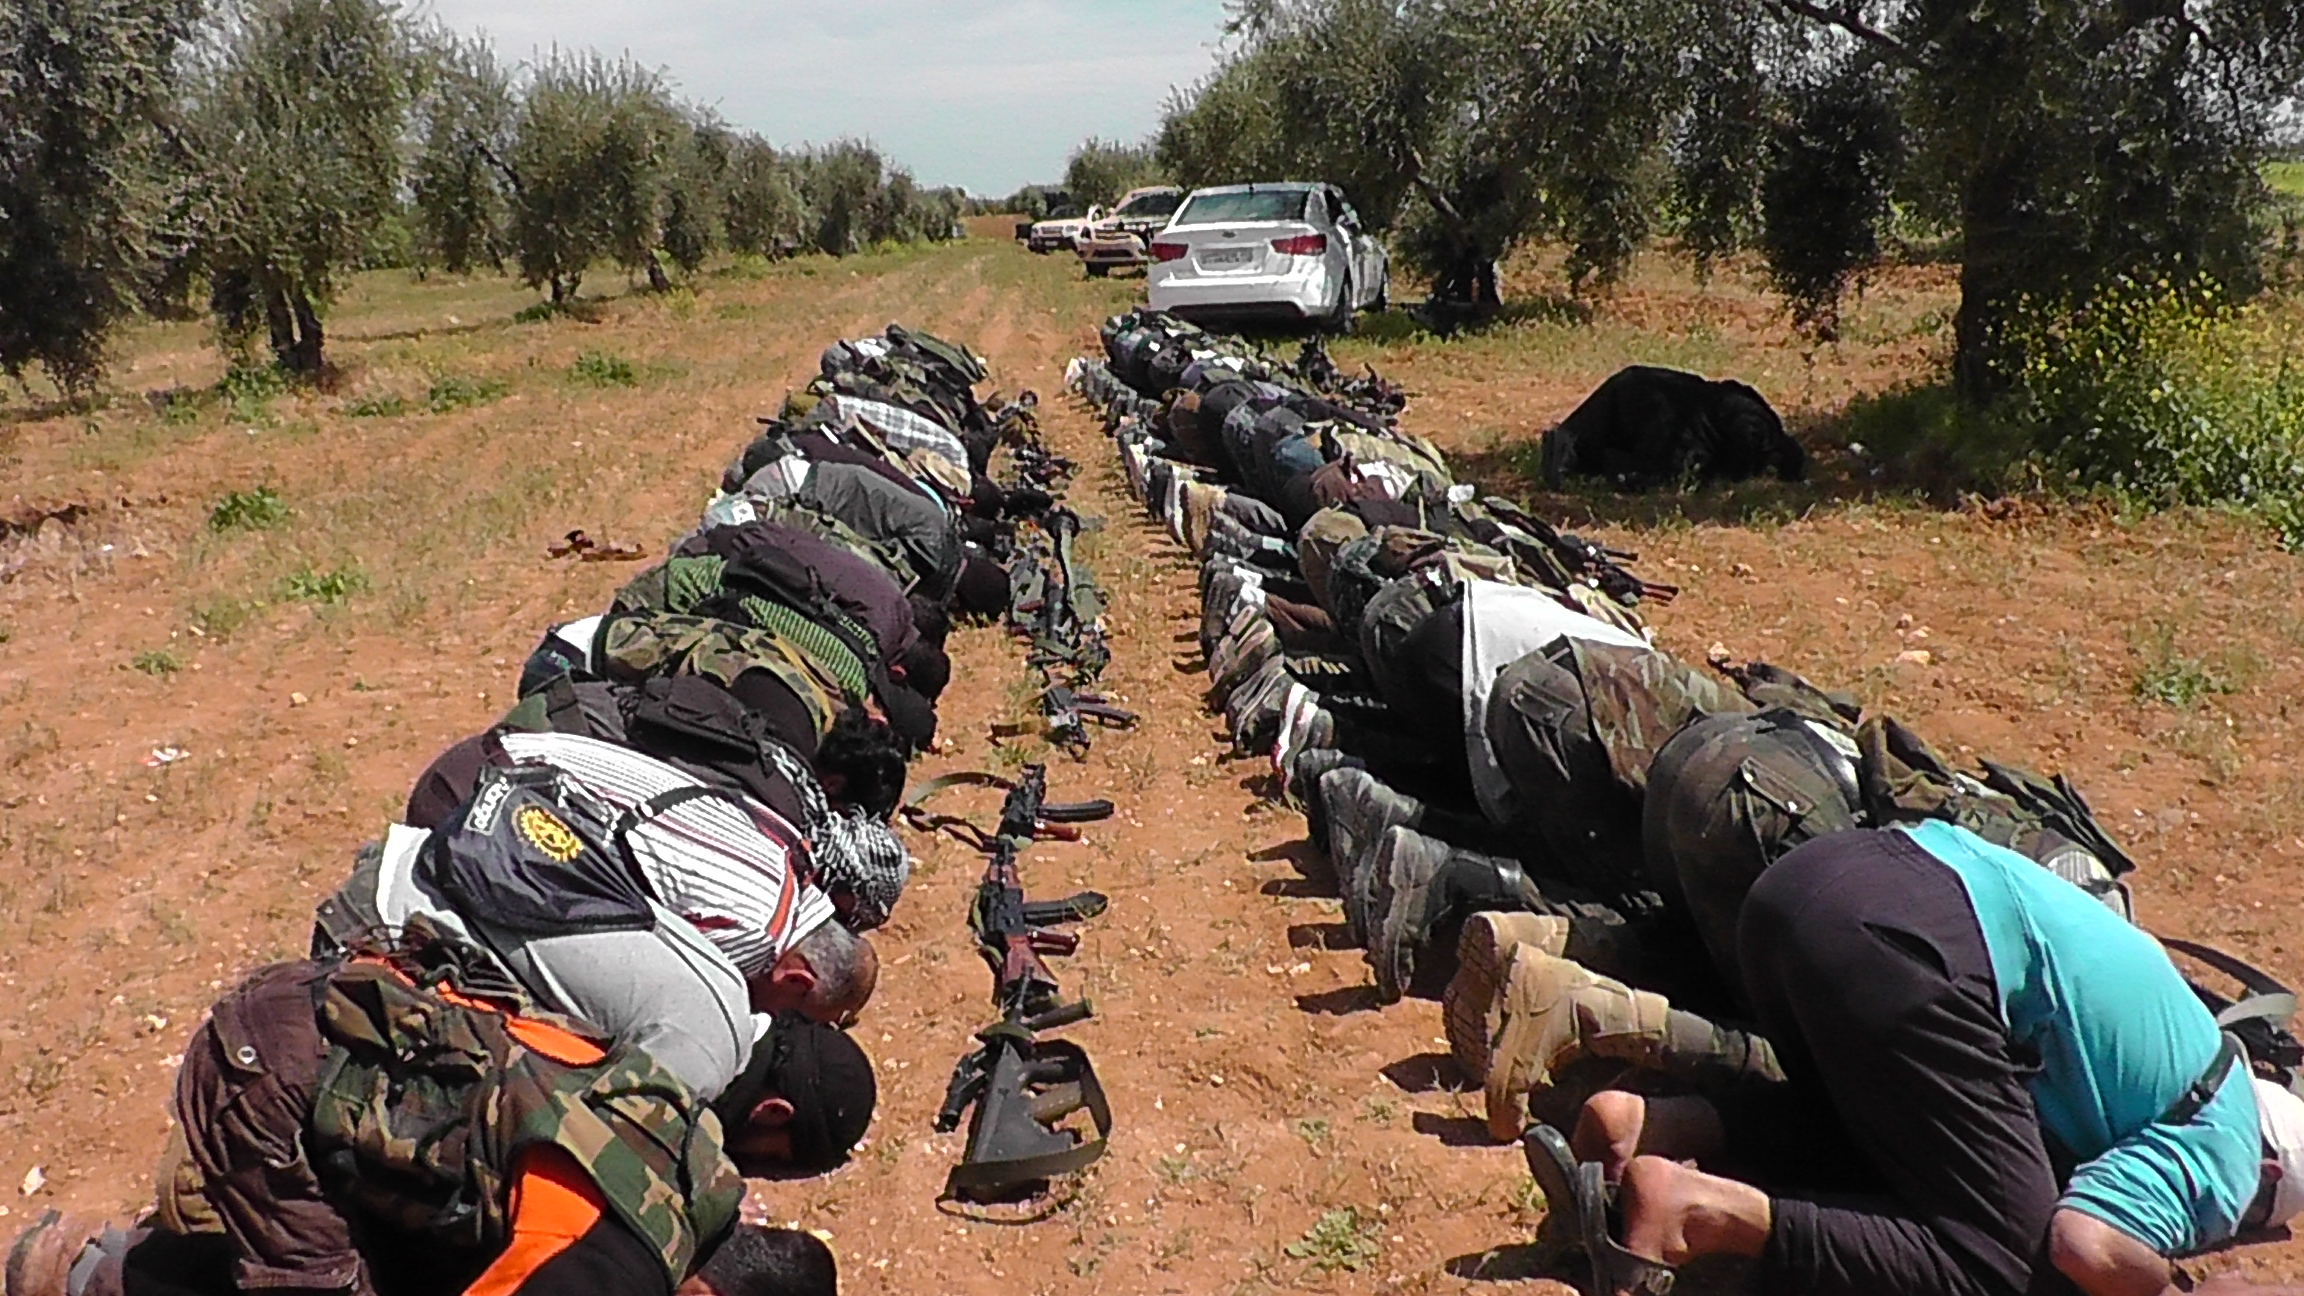 Rebel fighters of the religiously conservative Liwa al Fateh Brigade of the Free Syrian Army (FSA) put their guns down for prayer near the Menagh airbase in Aleppo governorate. Syrian rebels have used a mix of religion, international humanitarian law and